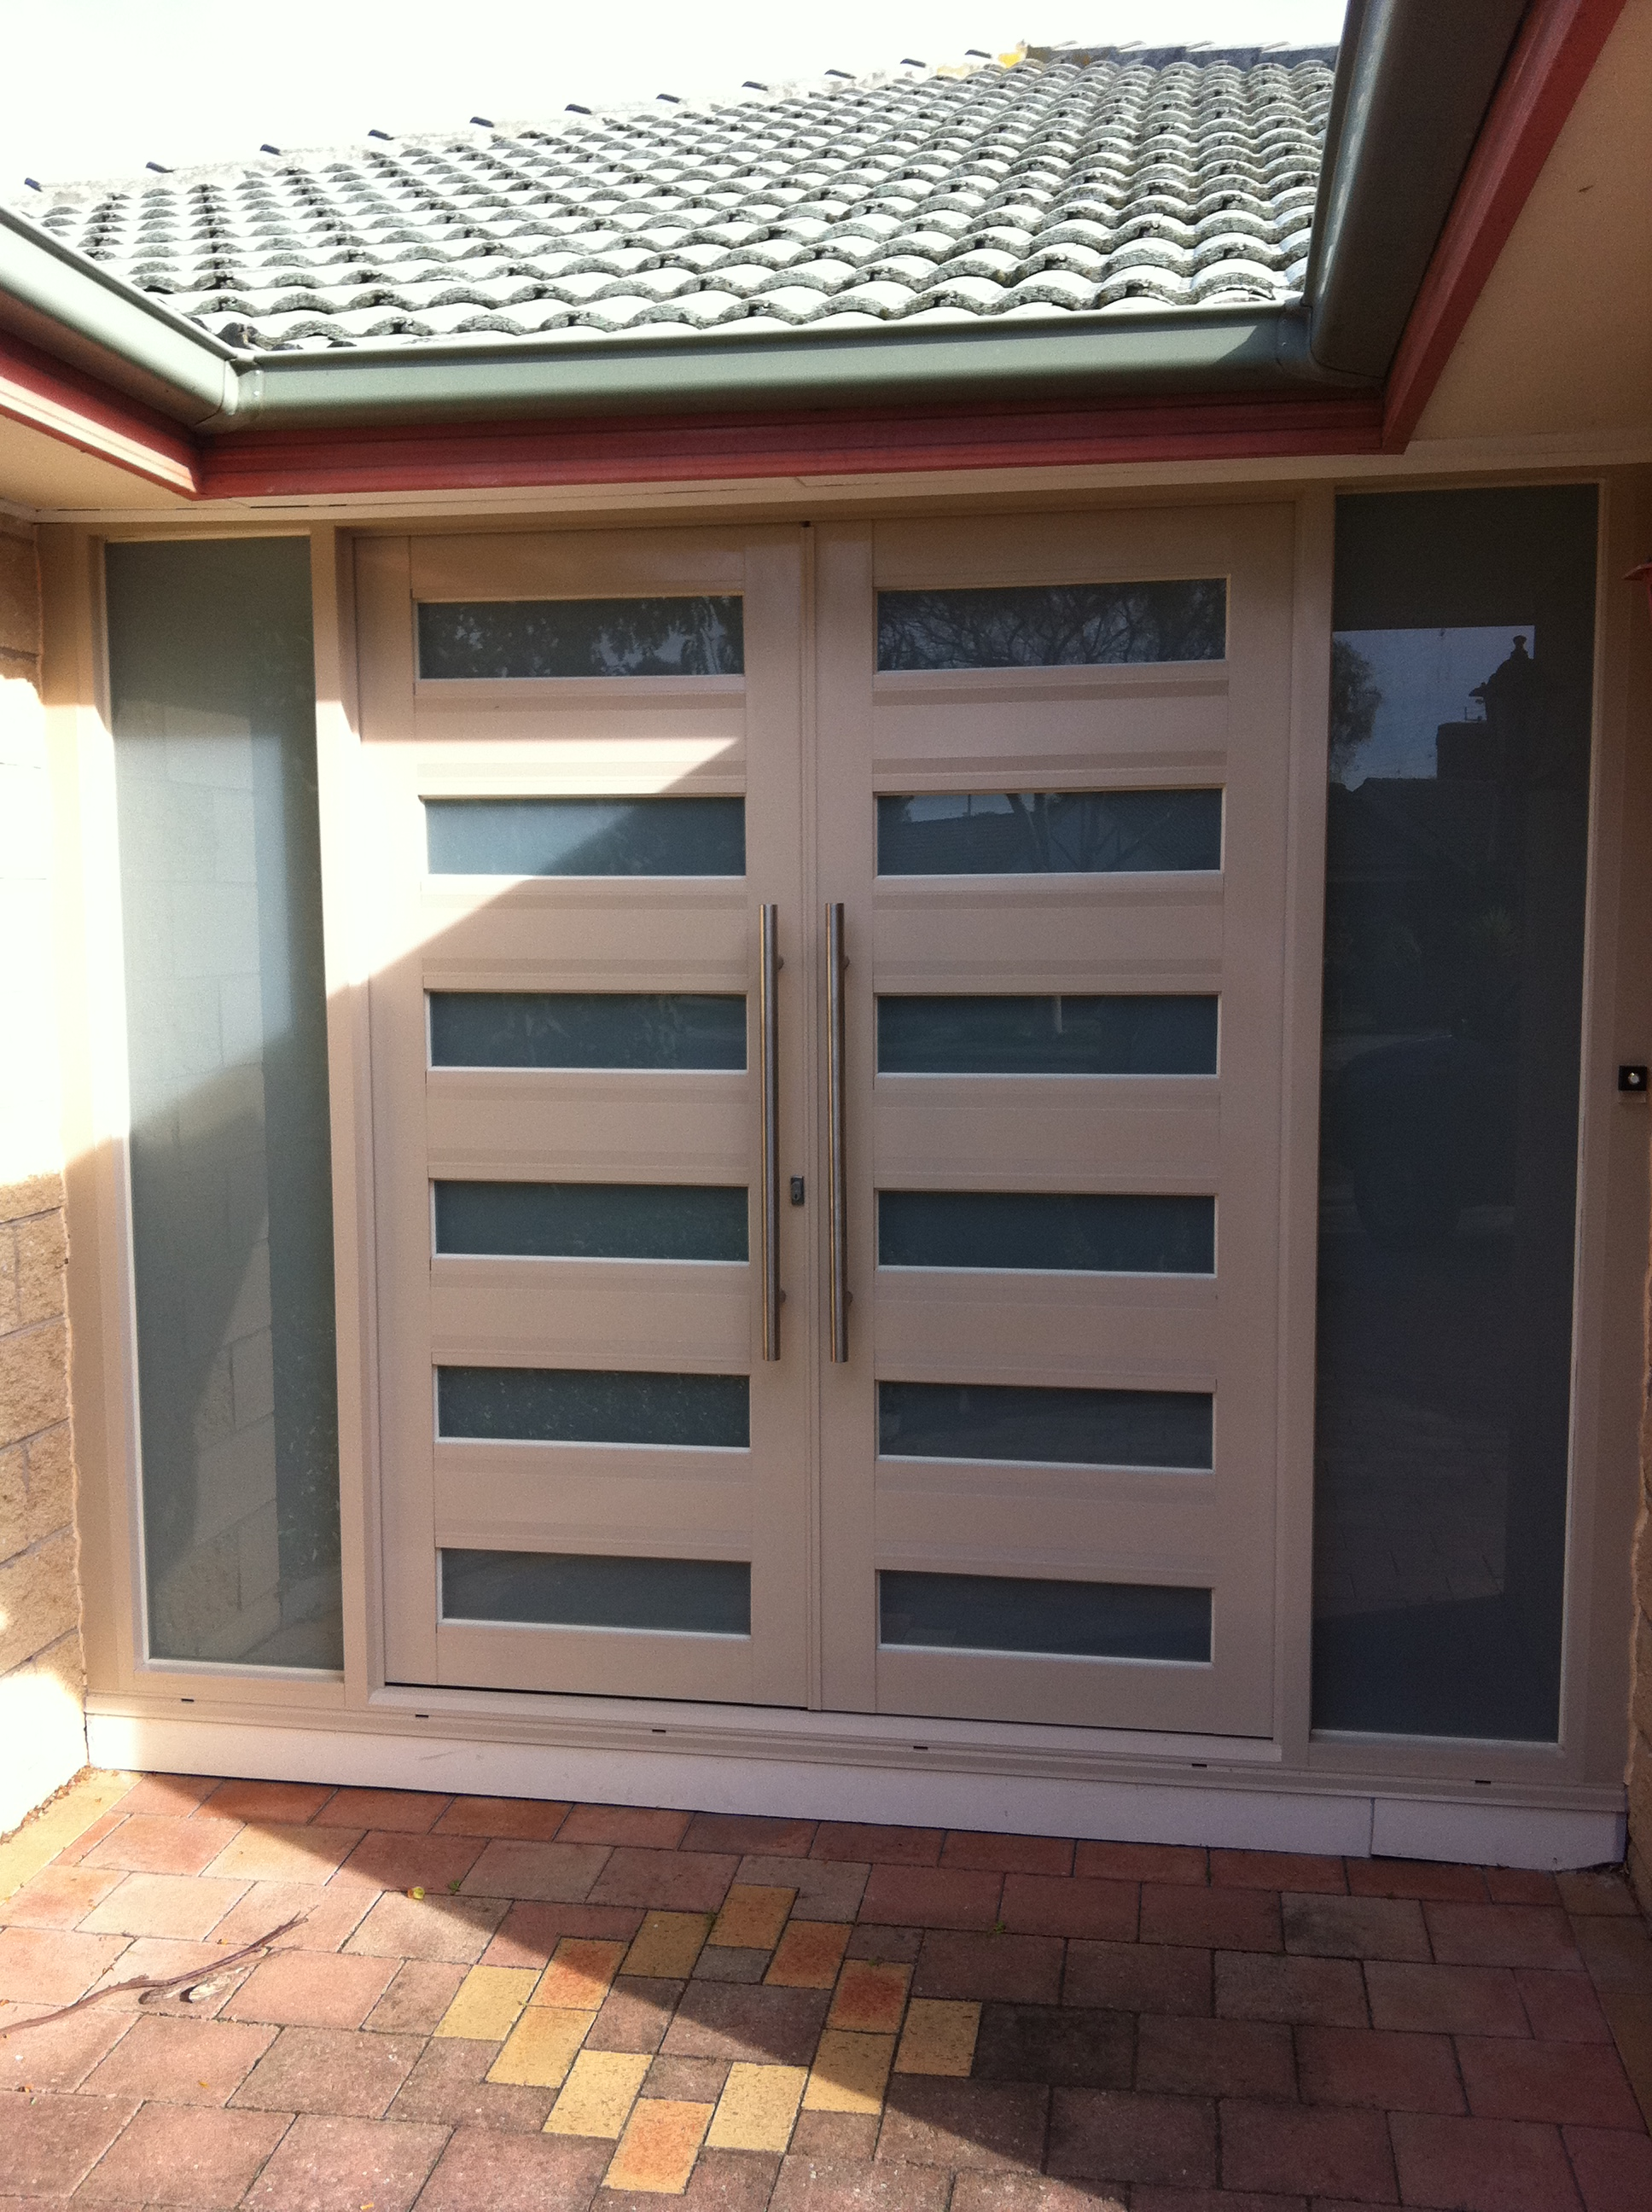 Residential front doors spk glass and aluminium for Residential front doors with glass